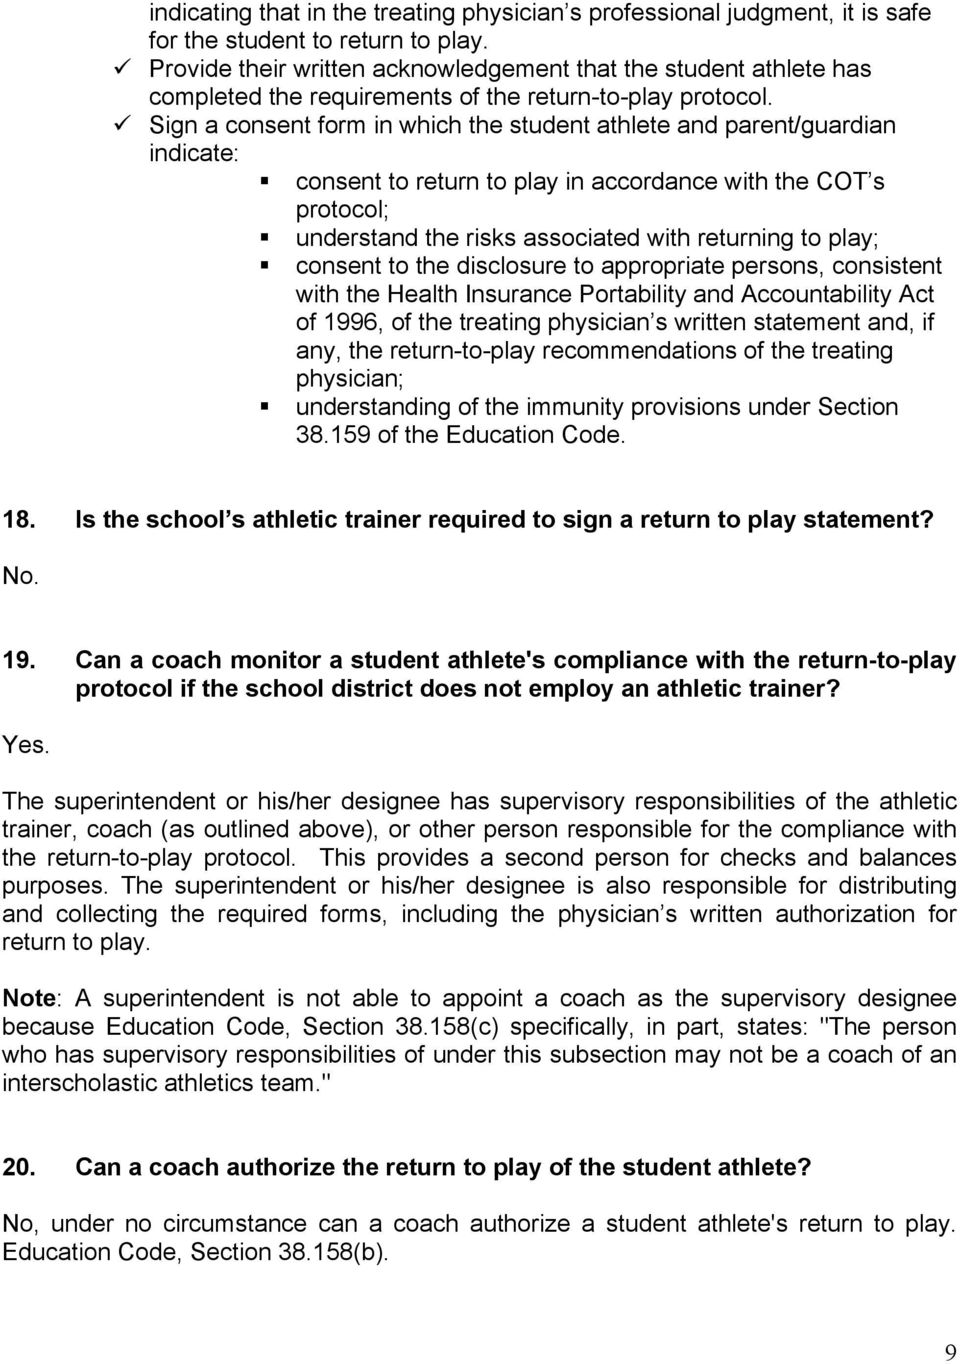 ü Sign a consent form in which the student athlete and parent/guardian indicate: consent to return to play in accordance with the COT s protocol; understand the risks associated with returning to